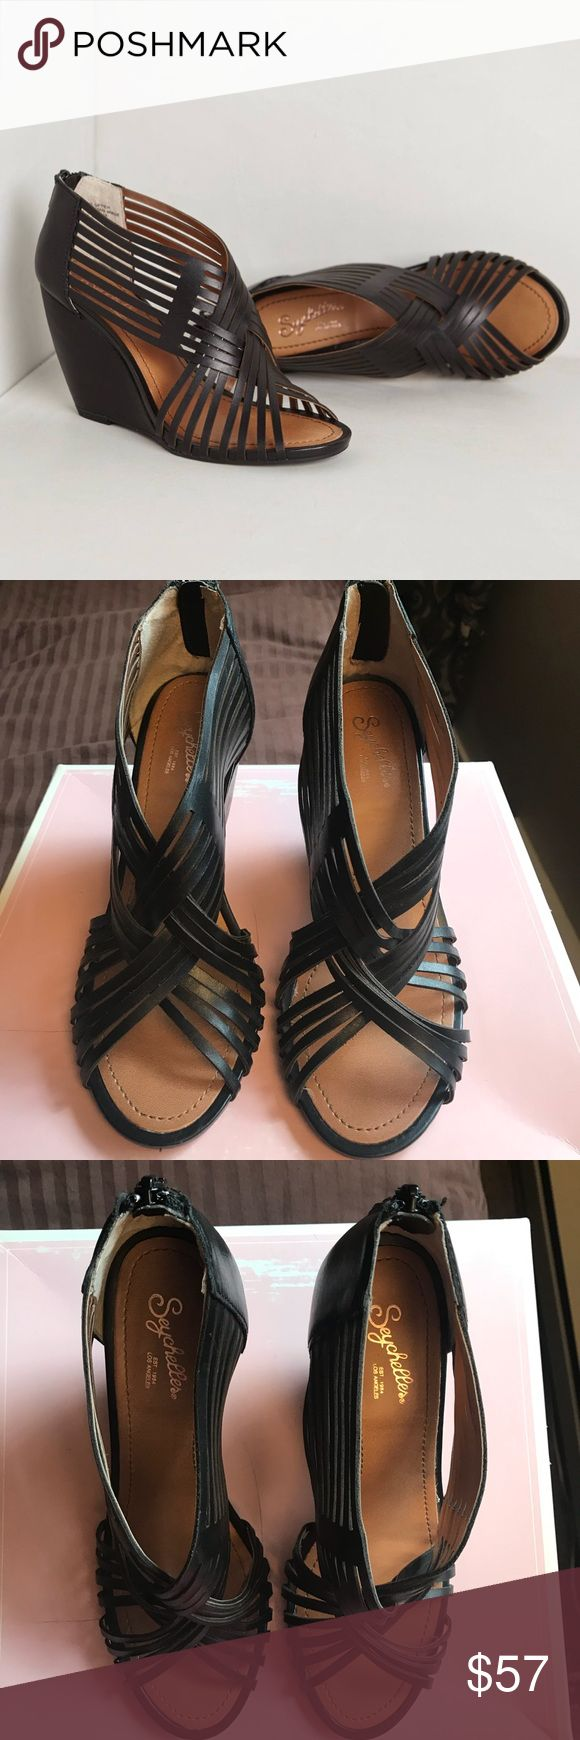 Seychelles black wedge sandals Beautiful black leather sandals with wedge and back heel zippers. Seychelles Los Angeles  Small scuff on heel as pictured. Hardly worn Smoke free and pet free home Seychelles Shoes Wedges